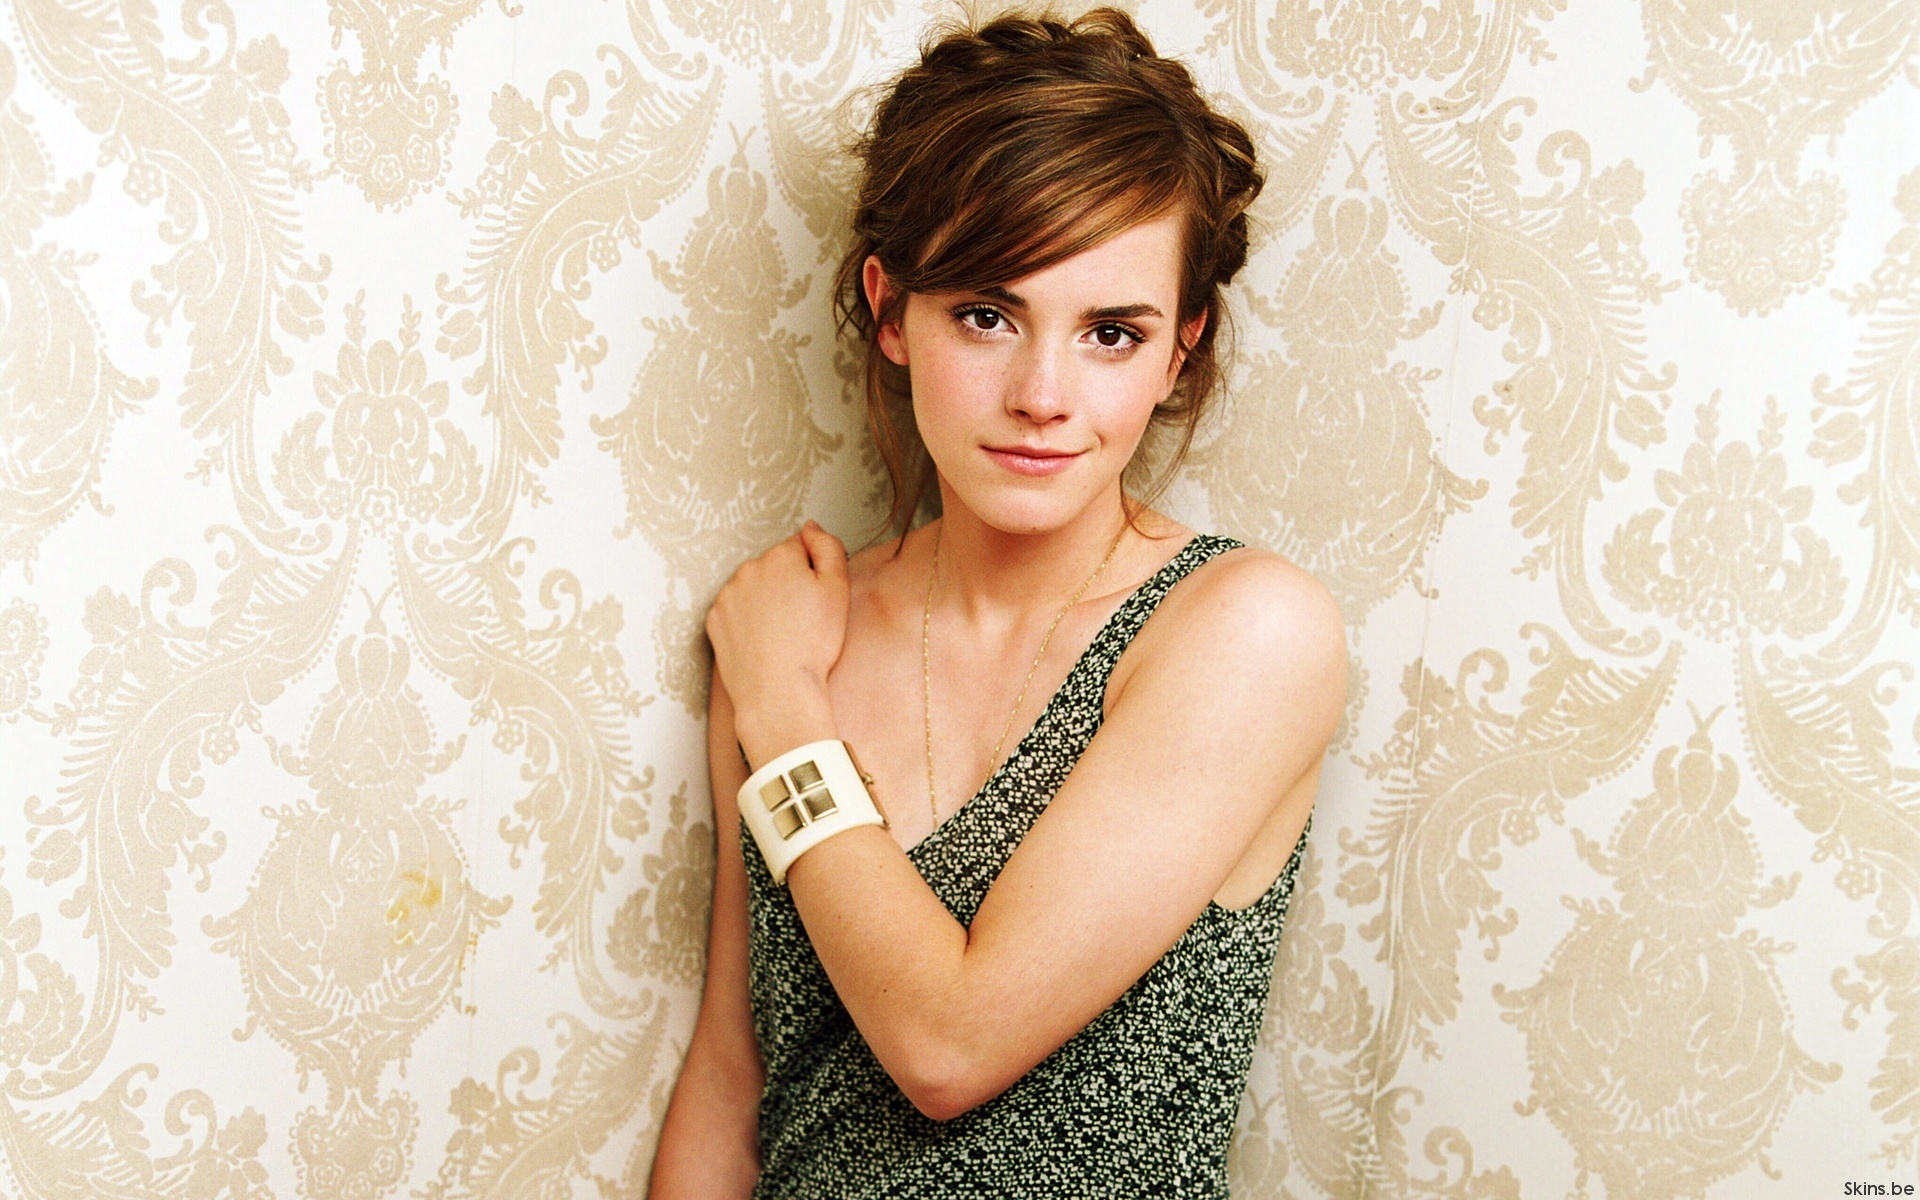 The sexiest emma watson hd wallpapers all hd wallpapers - Emma watson wallpaper ...